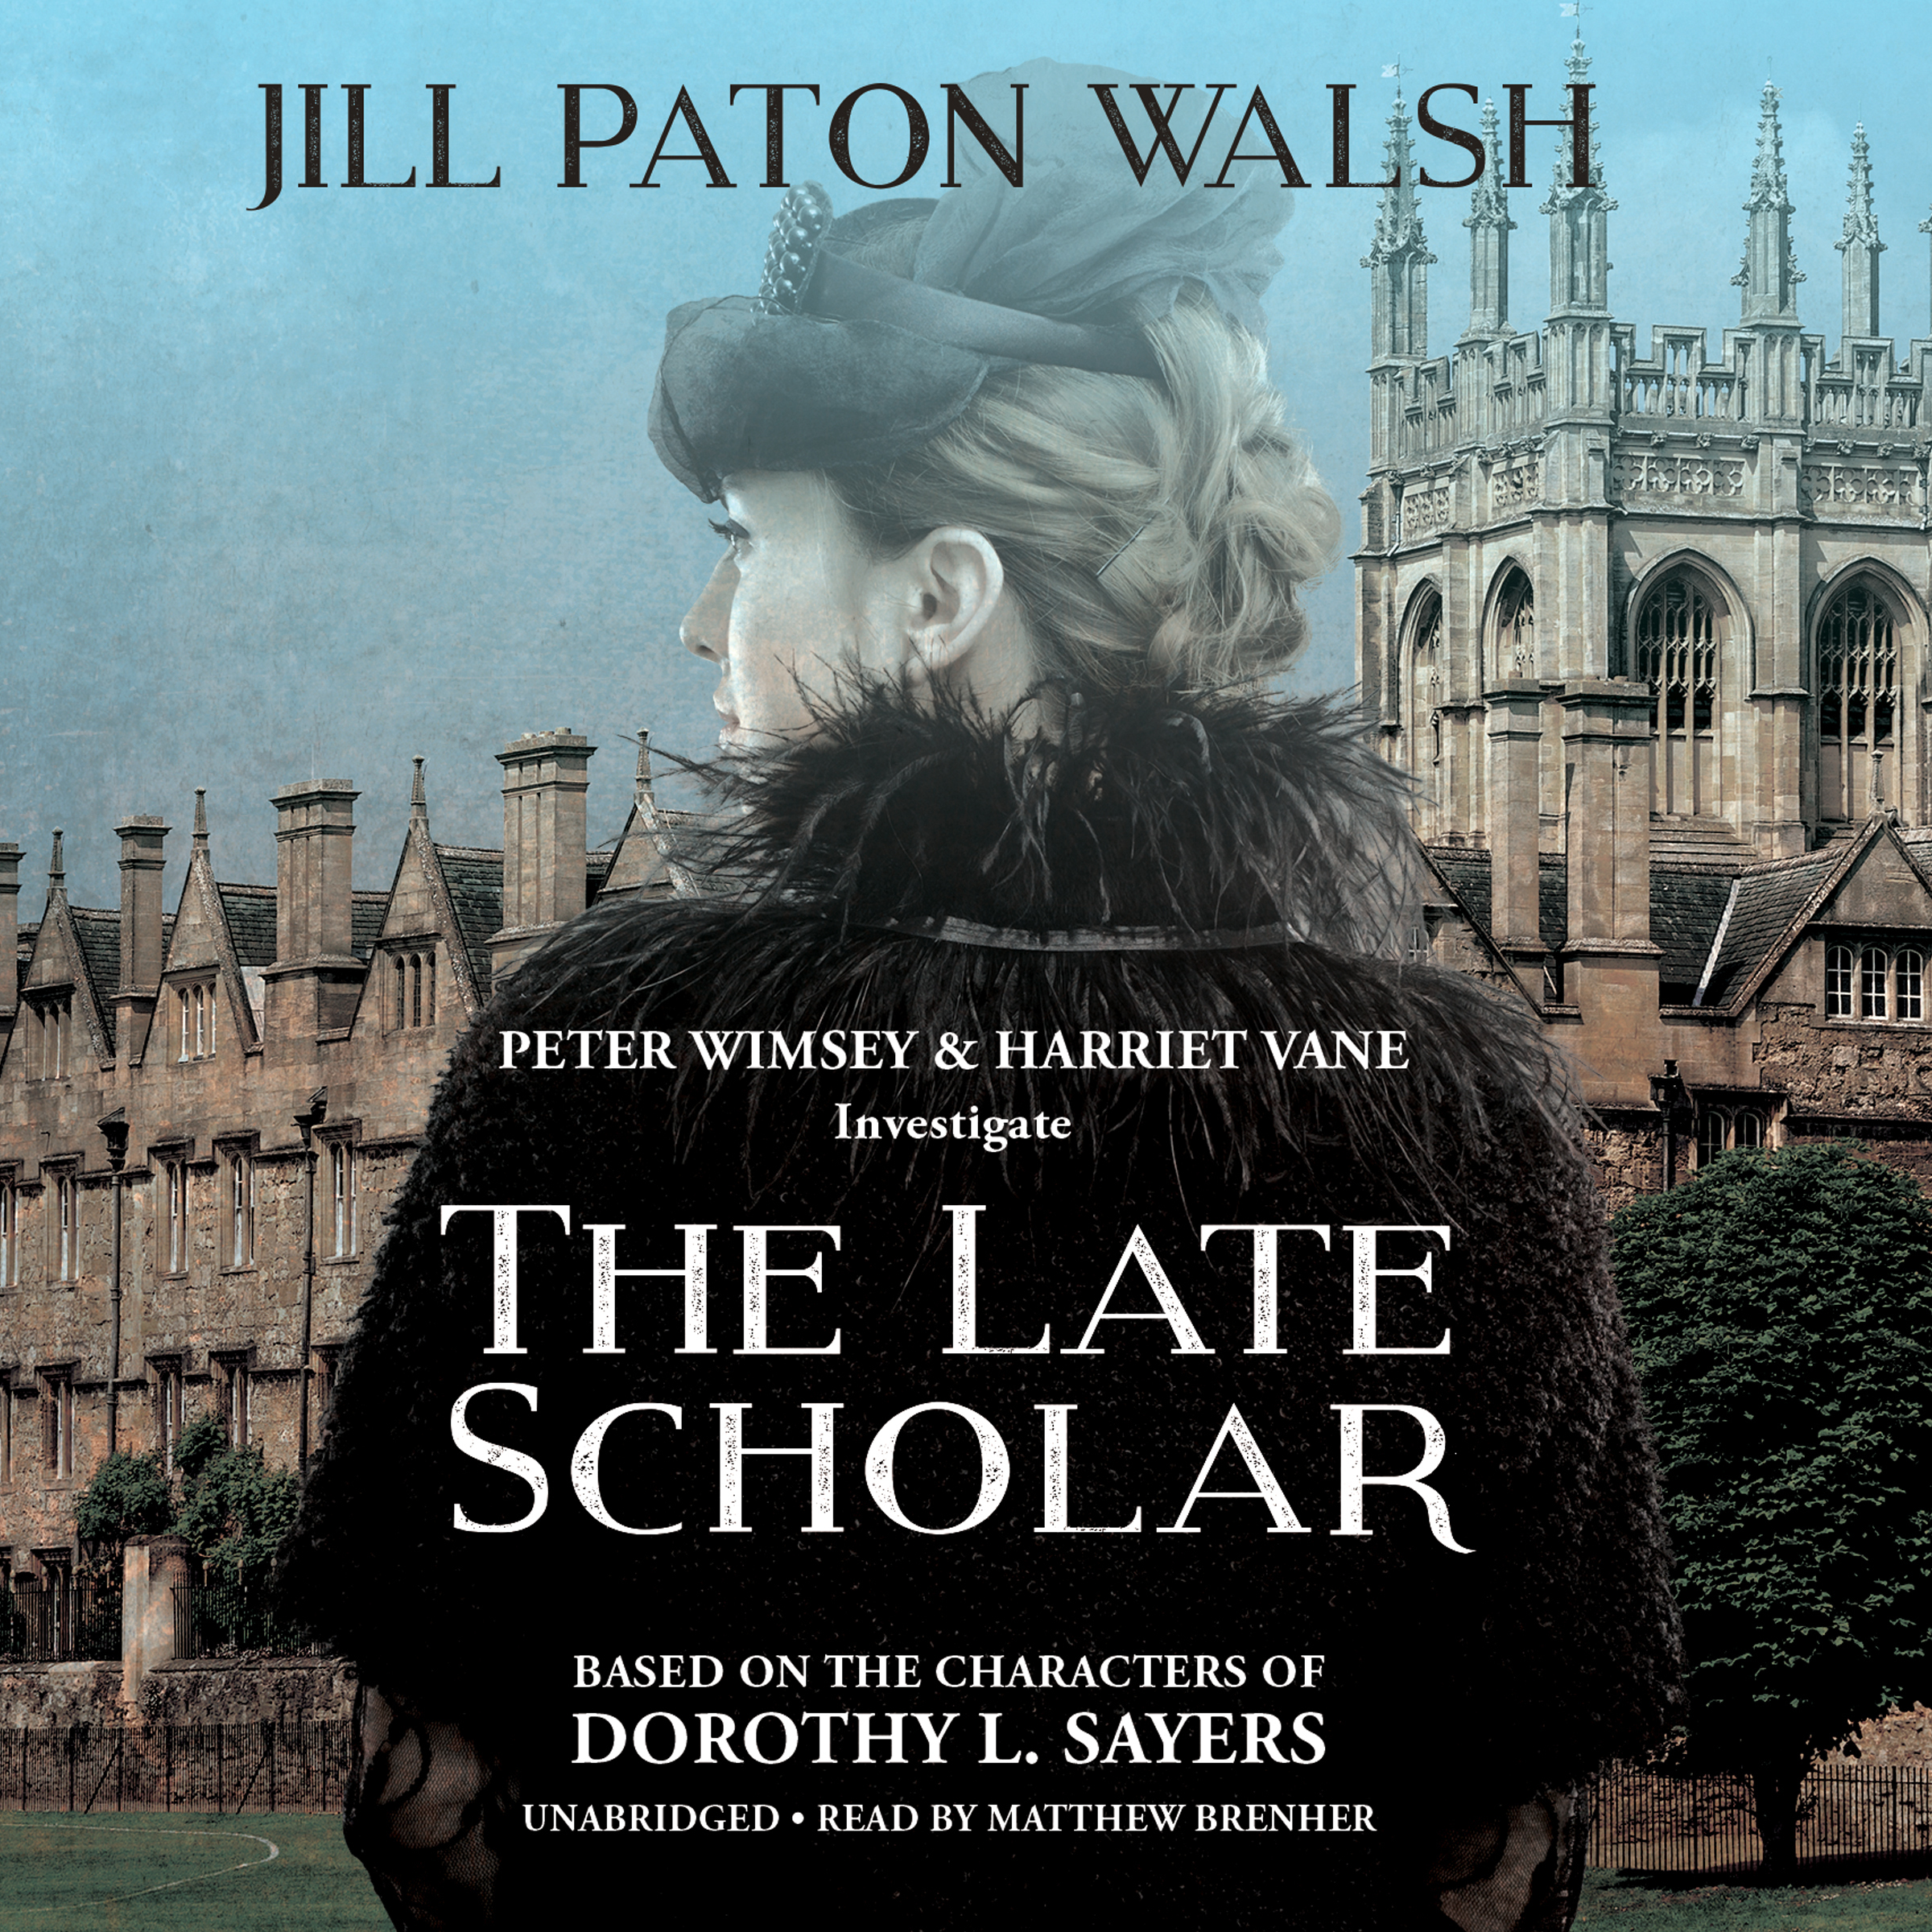 Printable The Late Scholar: The New Lord Peter Wimsey / Harriet Vane Mystery Audiobook Cover Art